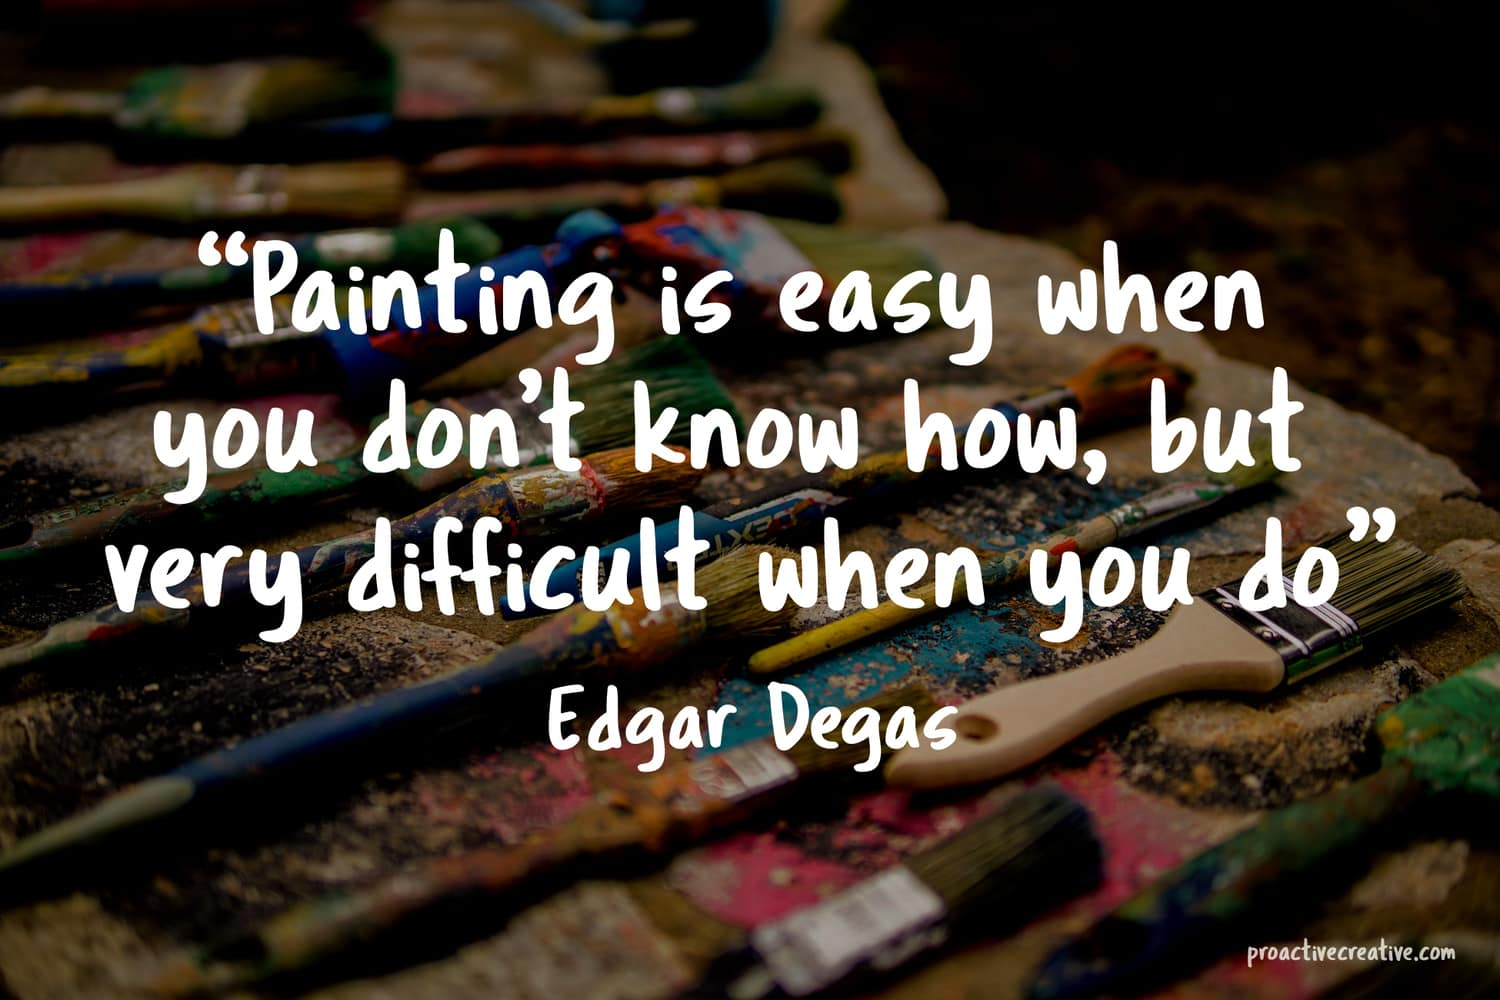 Art quotes - Edgar Degas